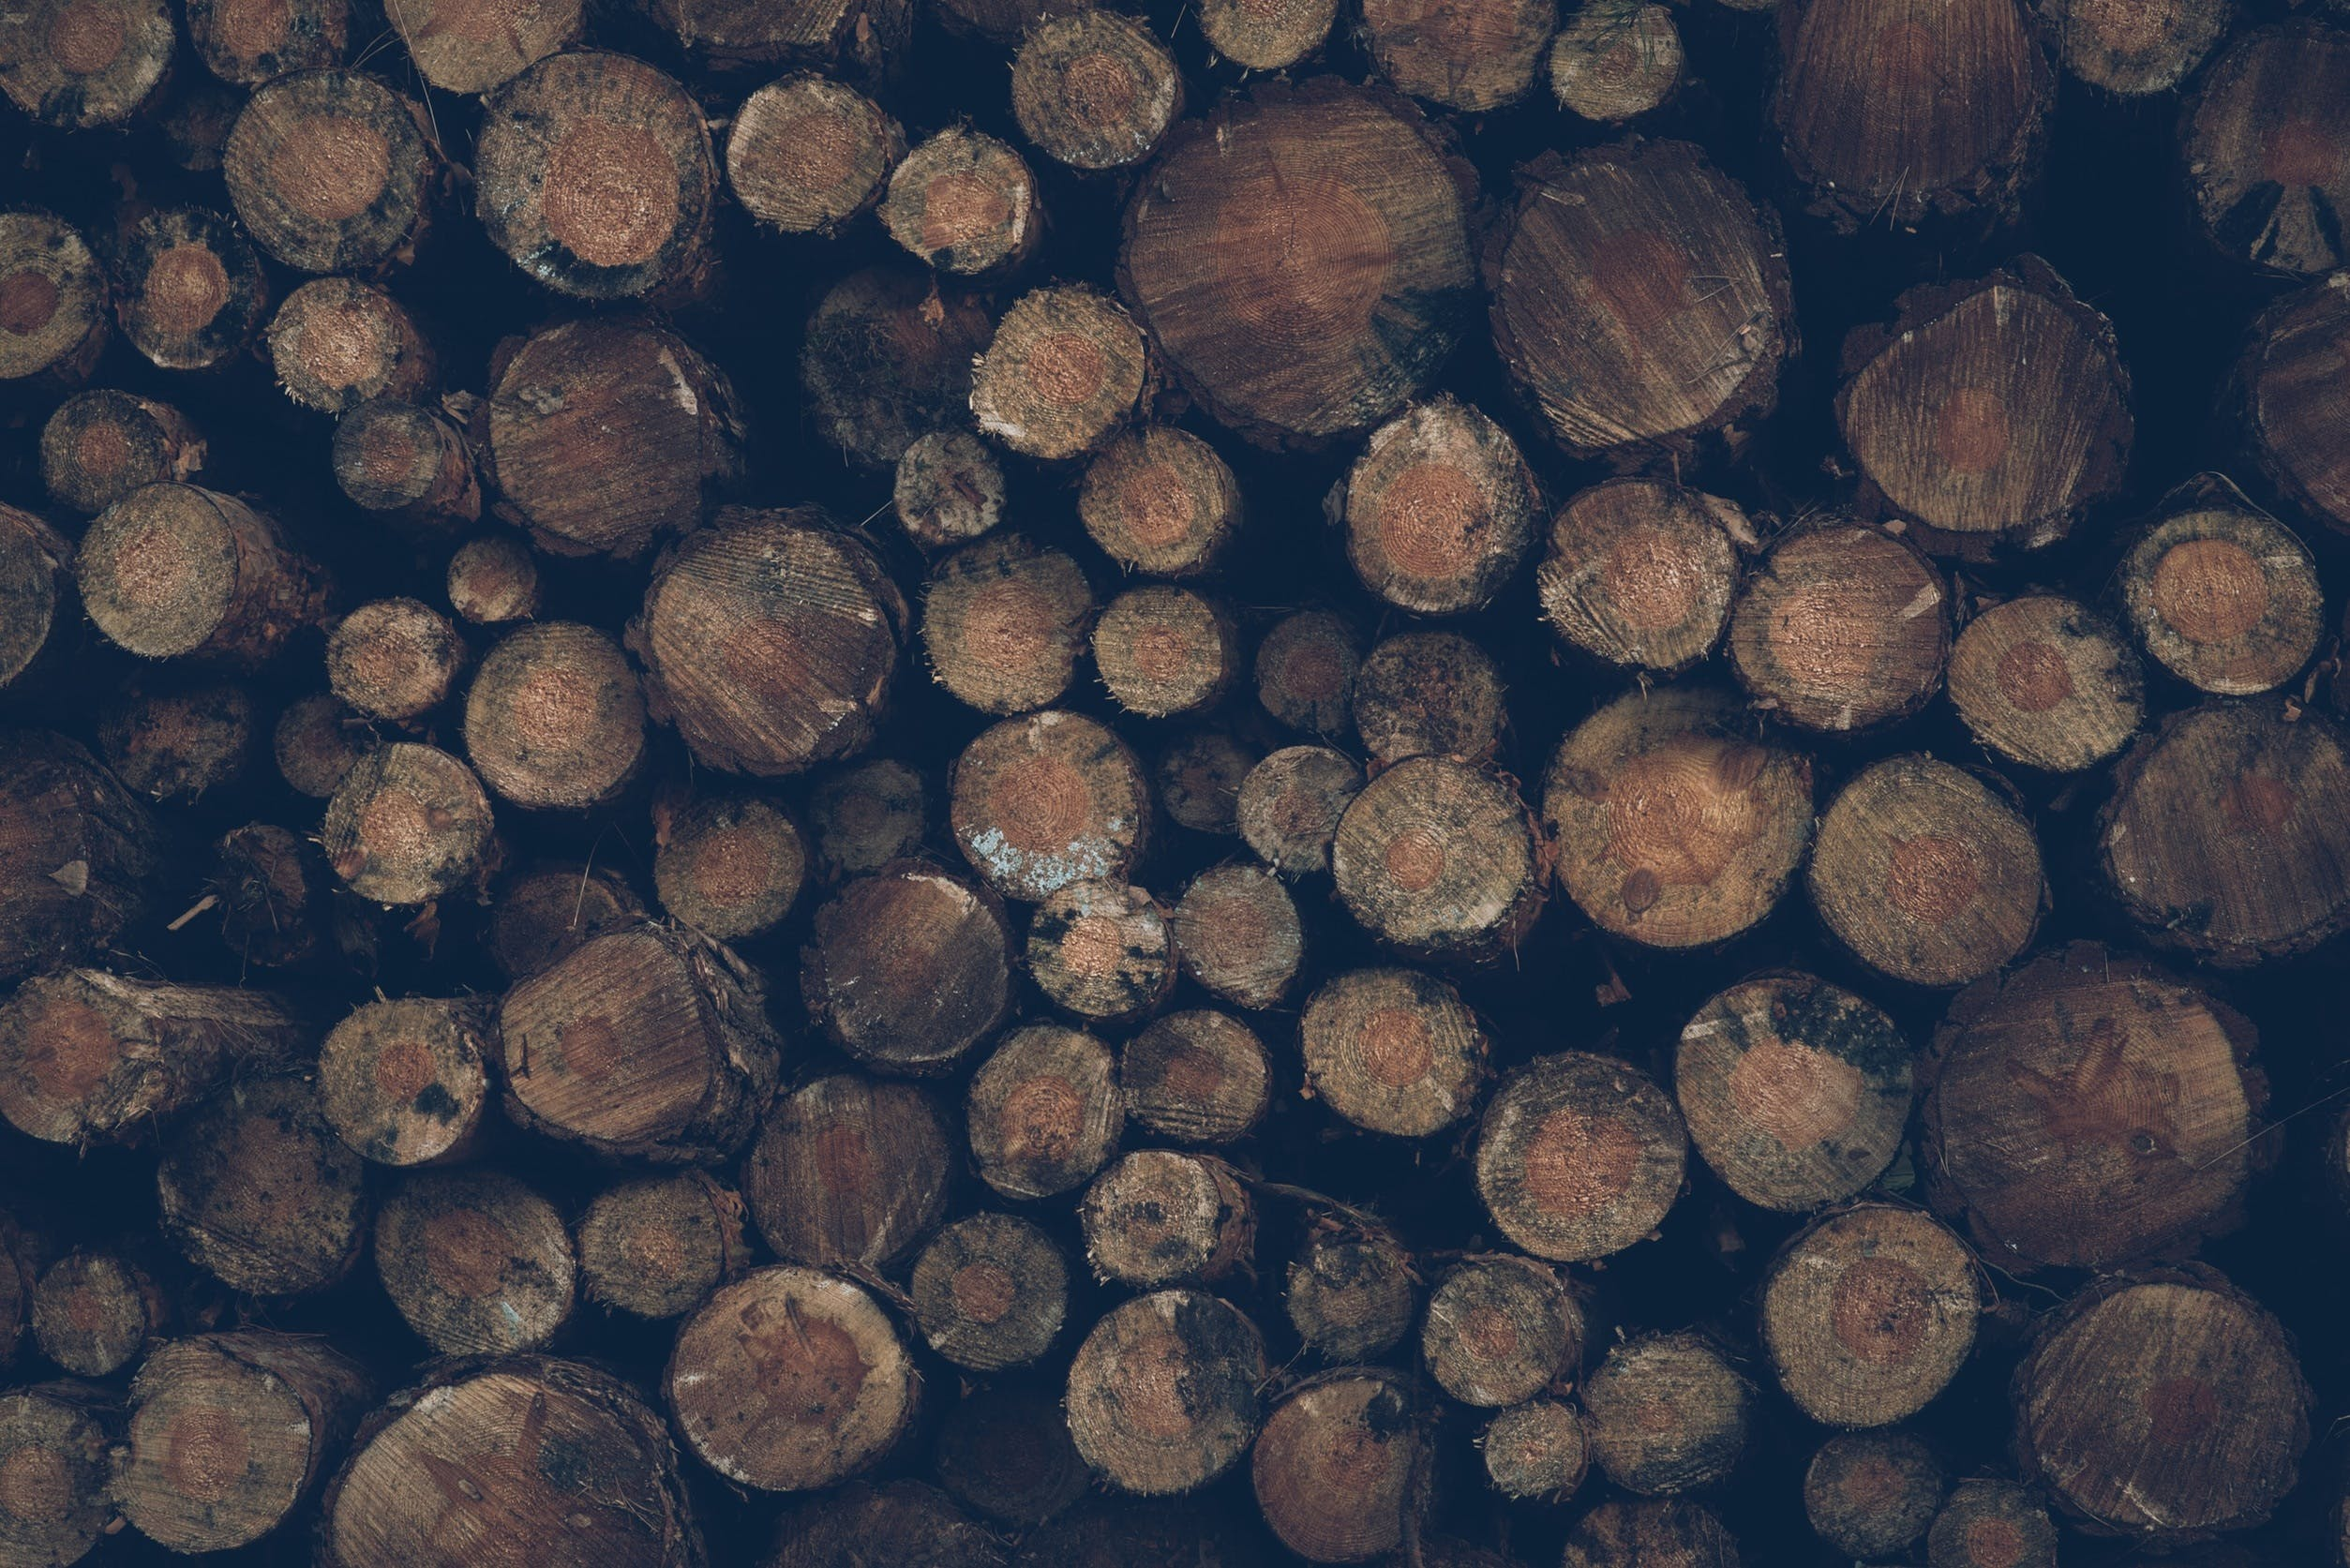 Free stock photo of wood, nature, forest, firewood